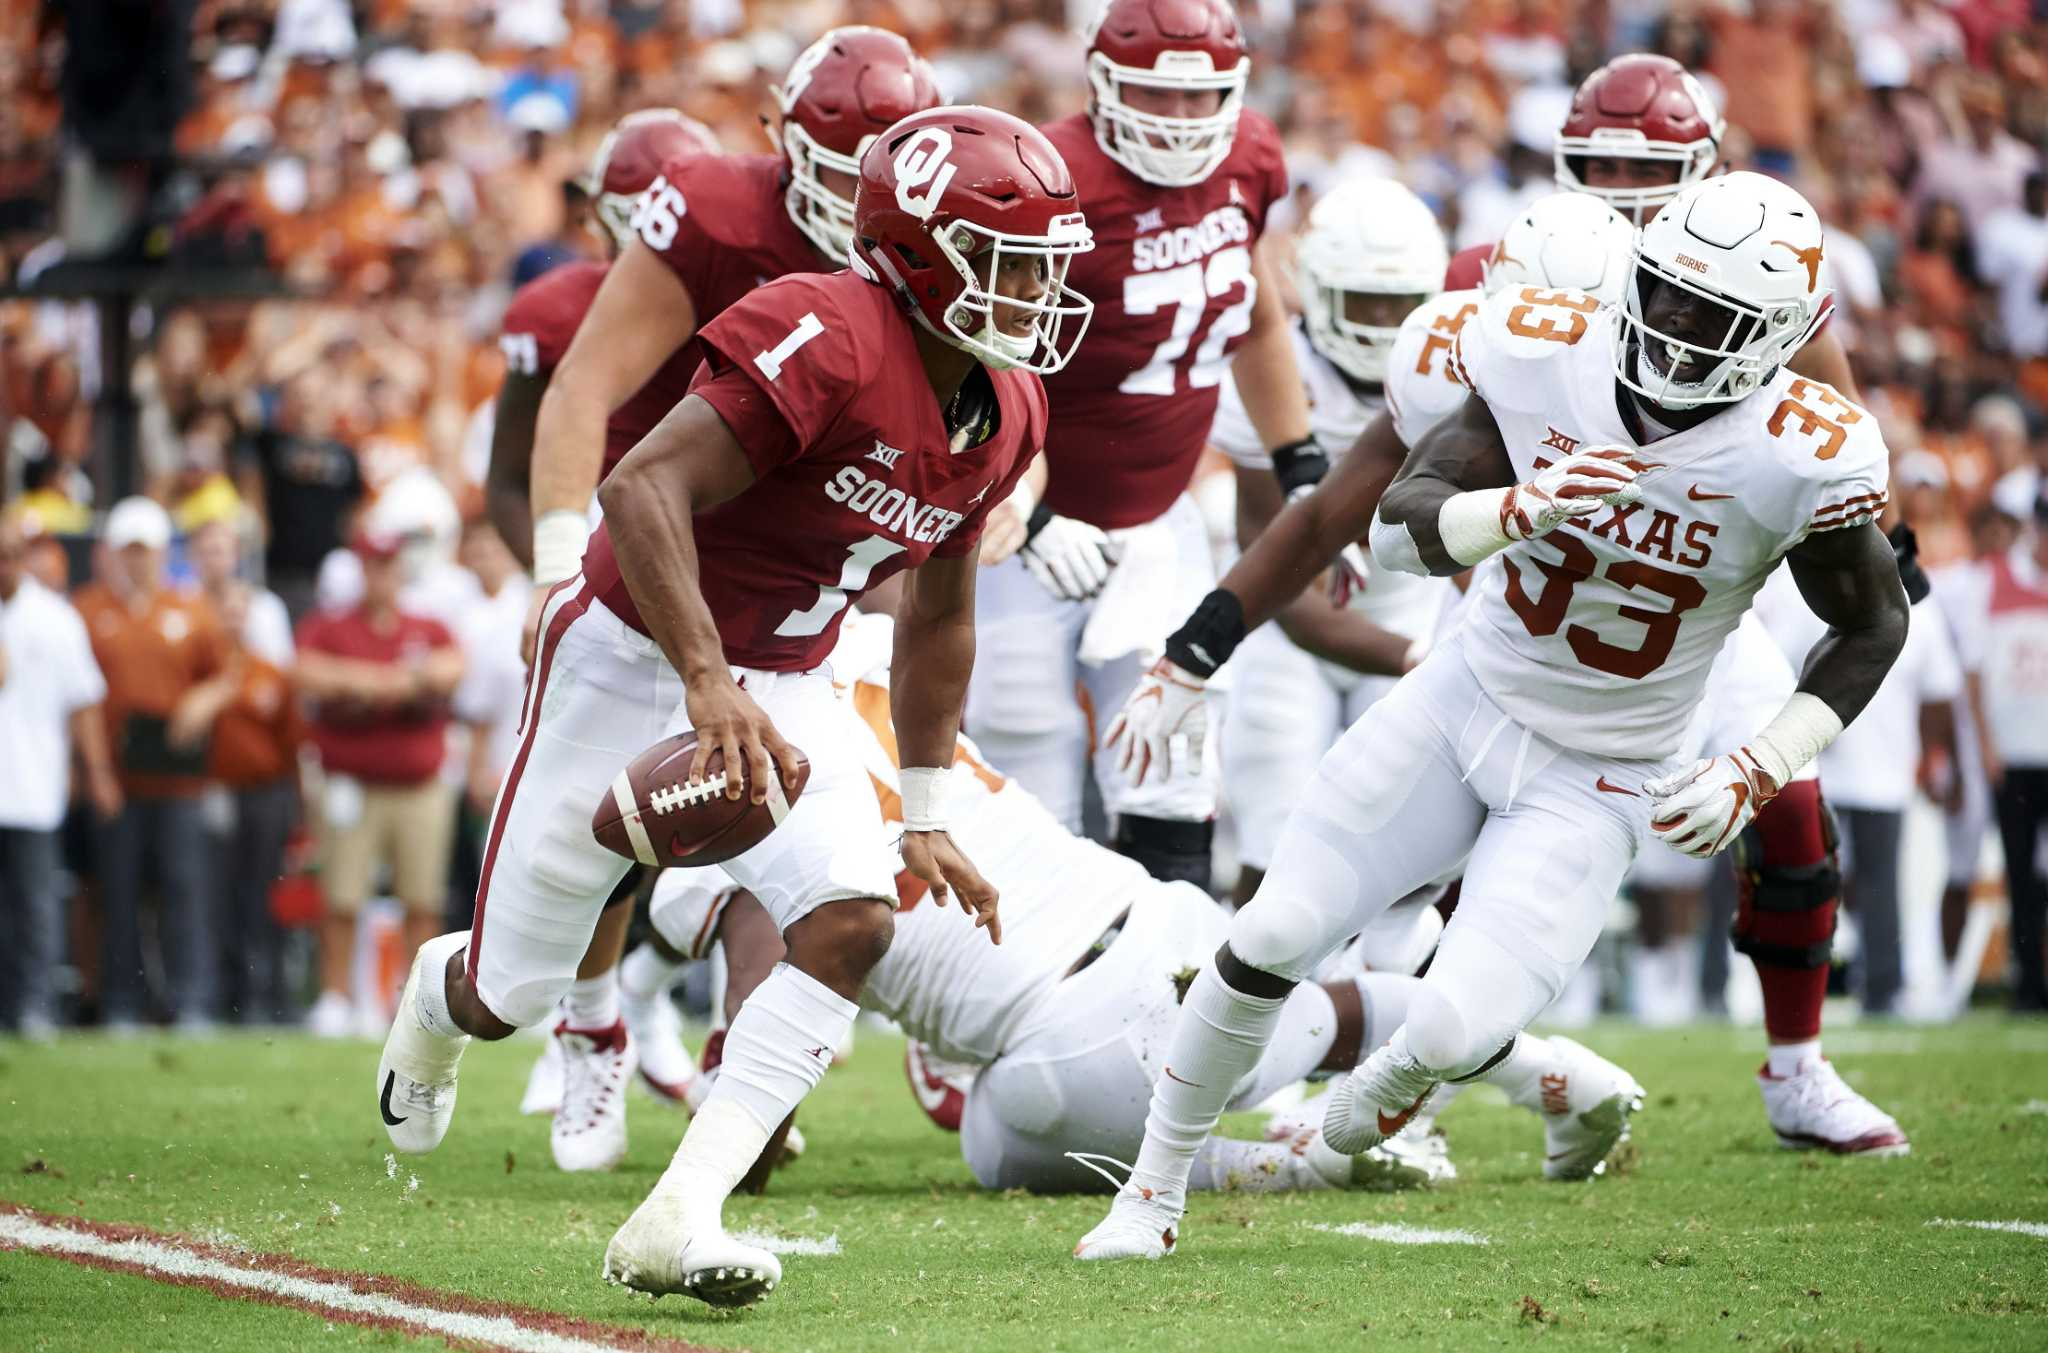 Longhorns brace for round 2 with Sooners' prolific offense